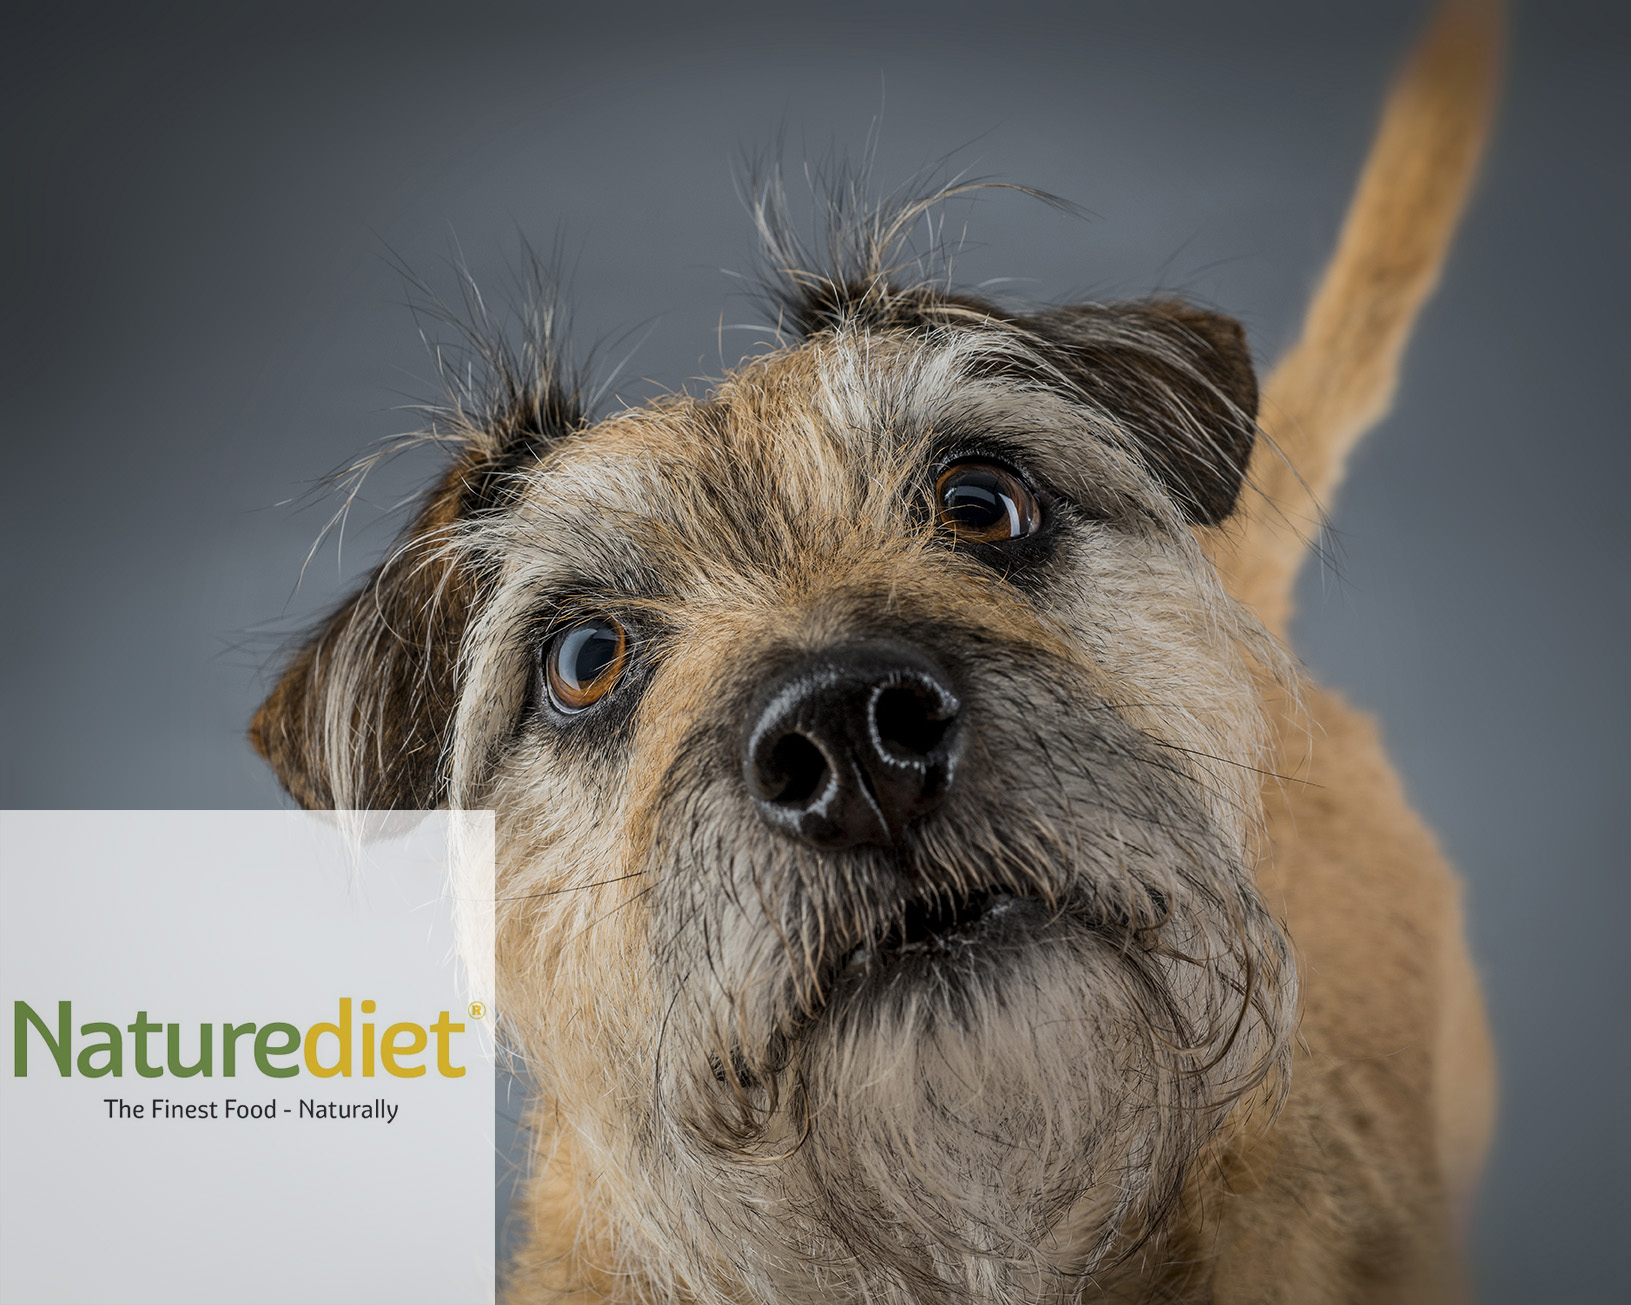 """Naturediet - """"Alex provided a highly professional and accommodating service, and achieved fantastic results from what was a very challenging photoshoot. Naturediet Pet Foods Ltd worked with Alex on a 4 day shoot photographing over 30 dogs for a new packaging project. Alex's patience was unfaultable and his studio provided the perfect environment for all the dogs, and their owners, who attended."""""""